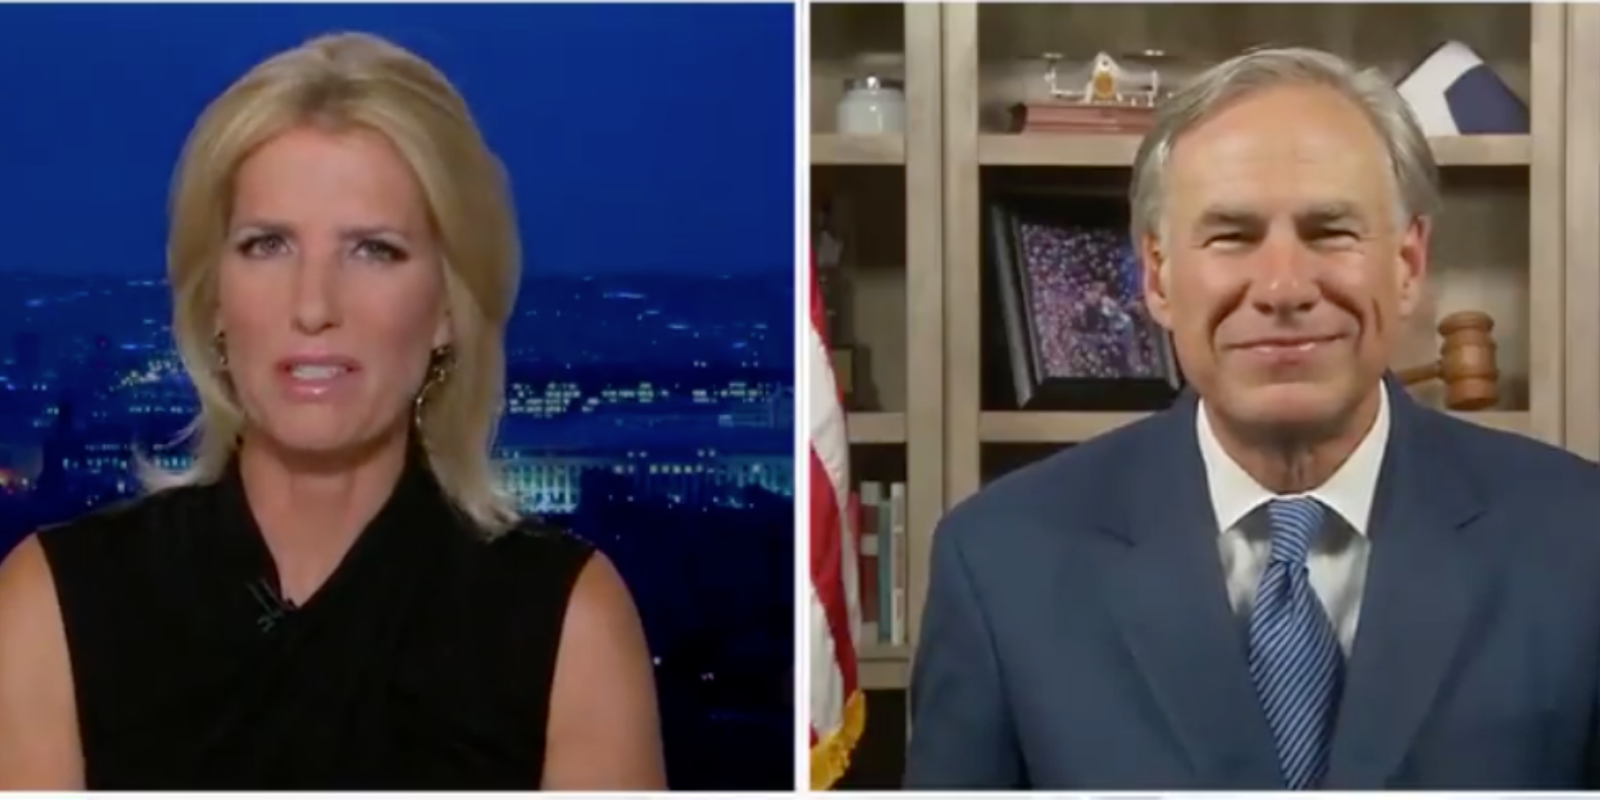 WATCH: Gov. Abbott vows to have Democrat lawmakers arrested when they come home to Texas